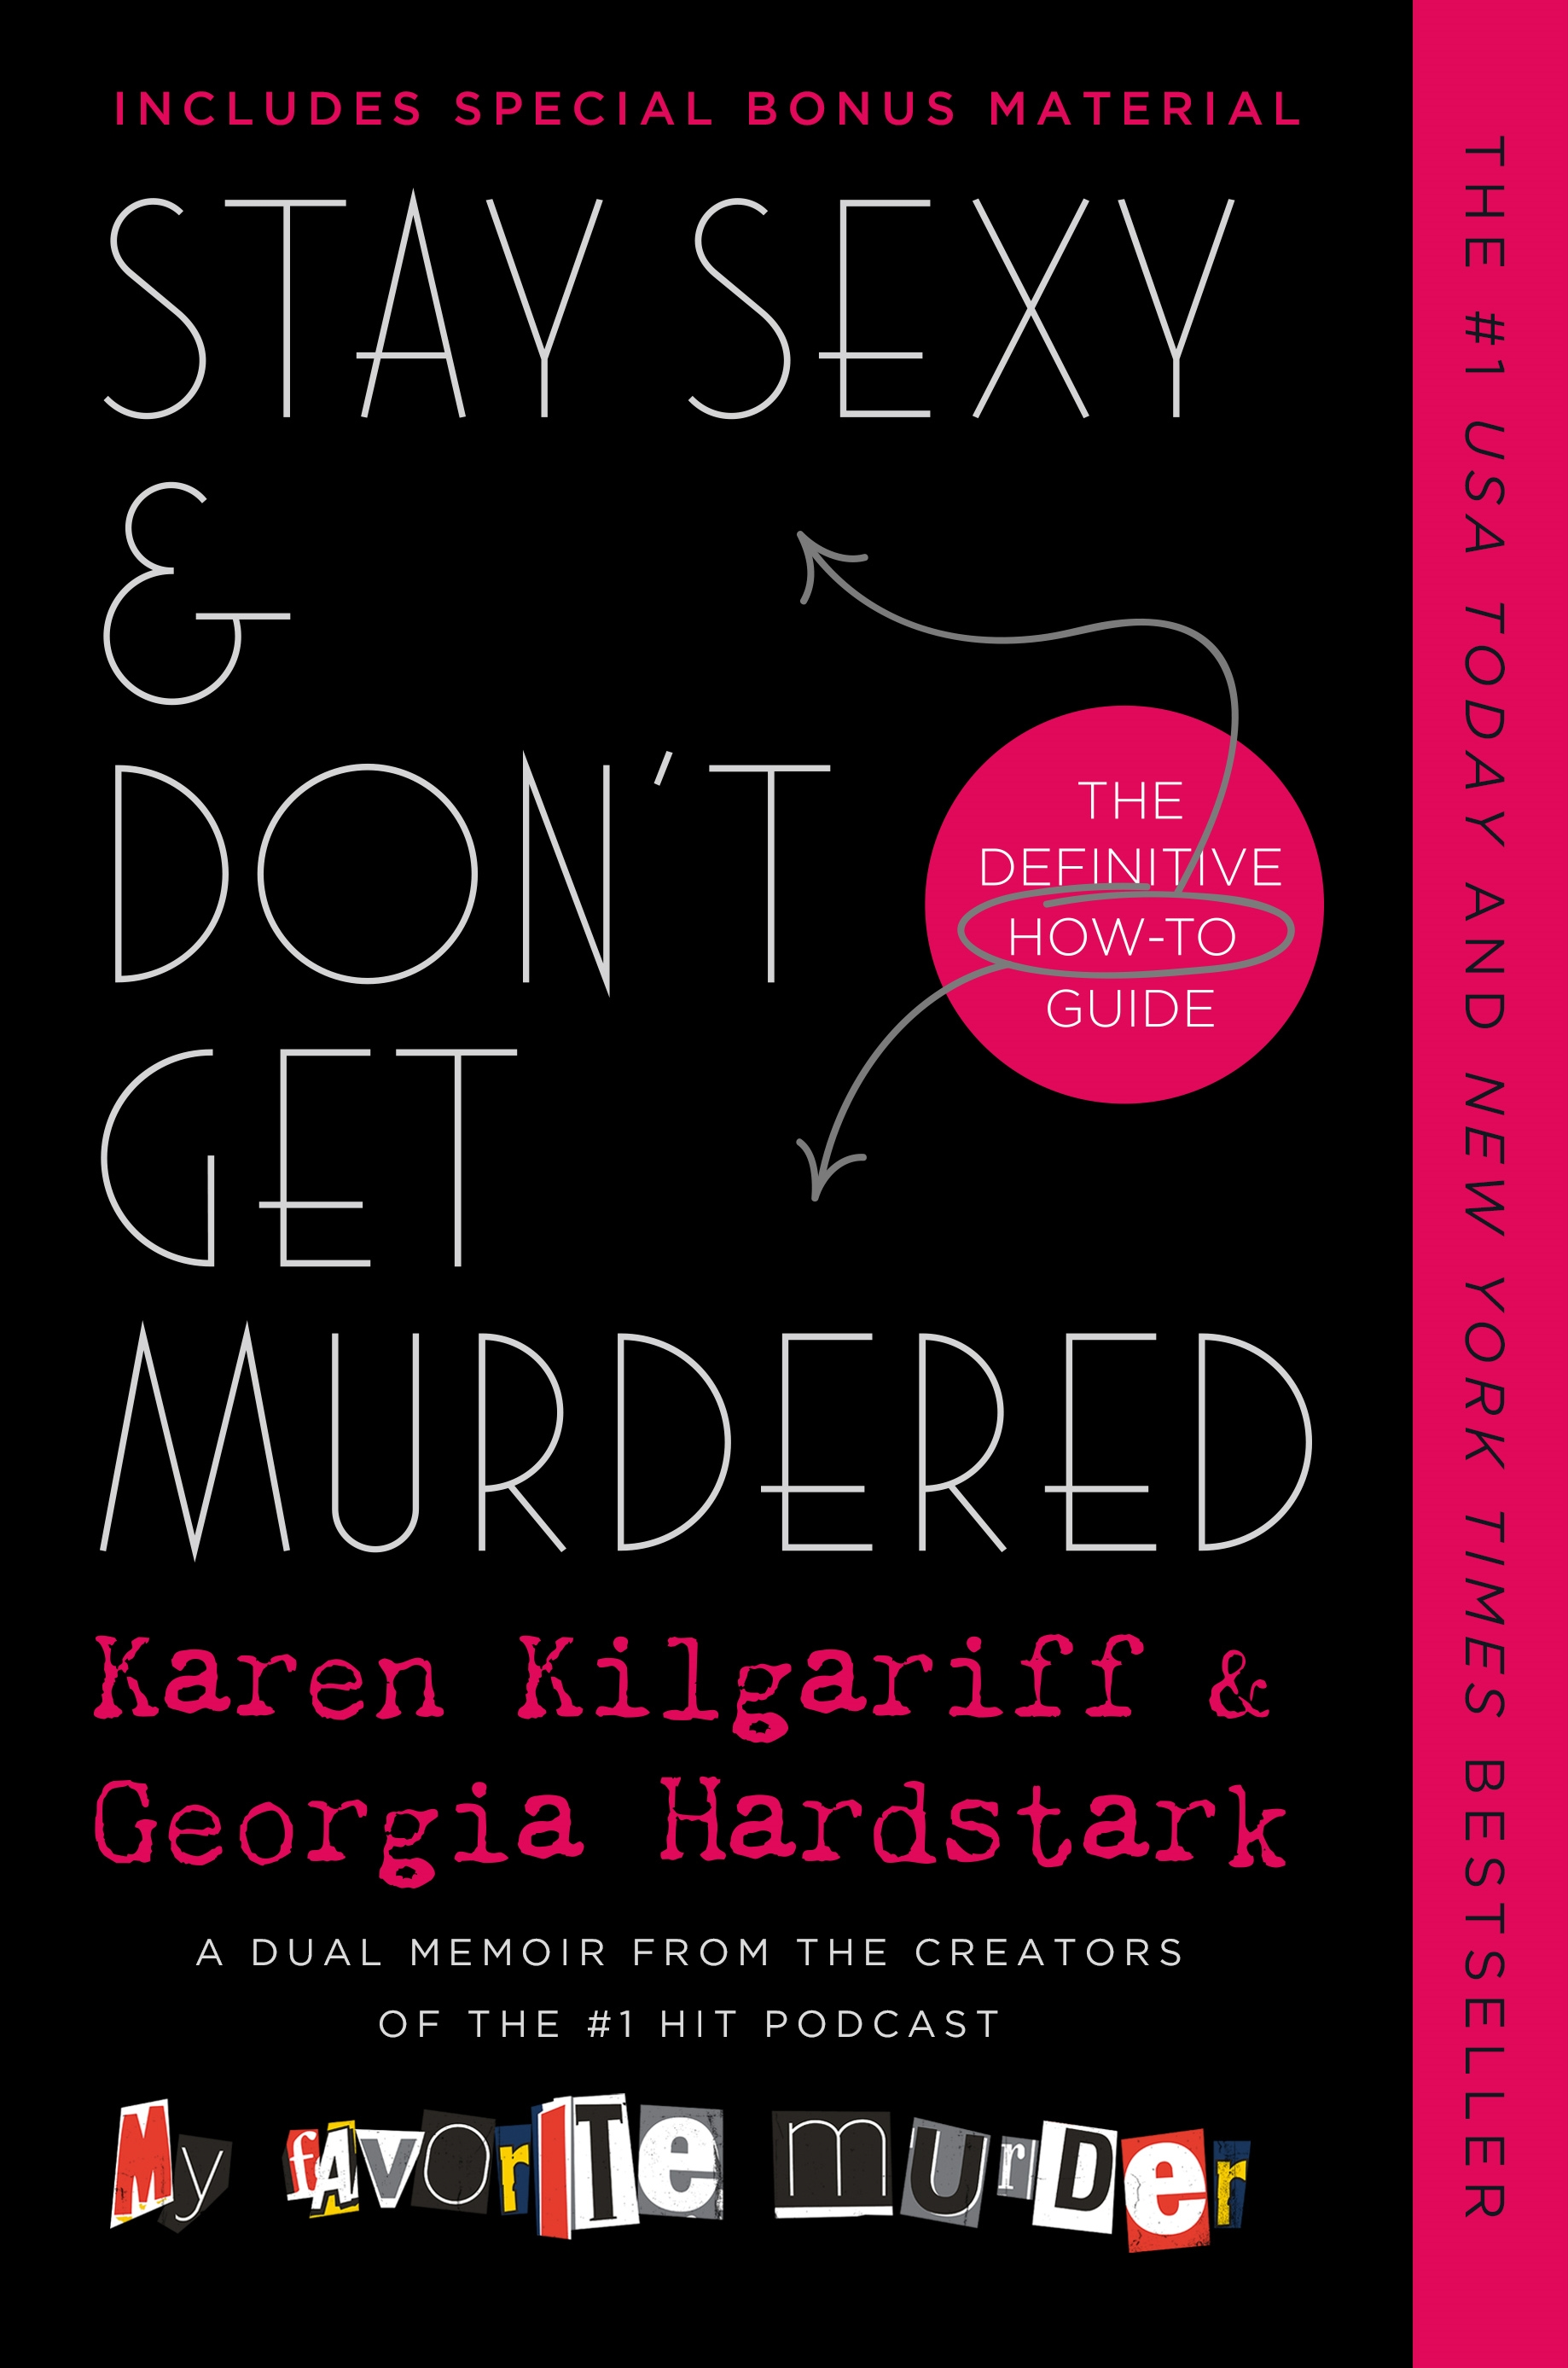 Stay Sexy & Don't Get Murdered The Definitive How-To Guide